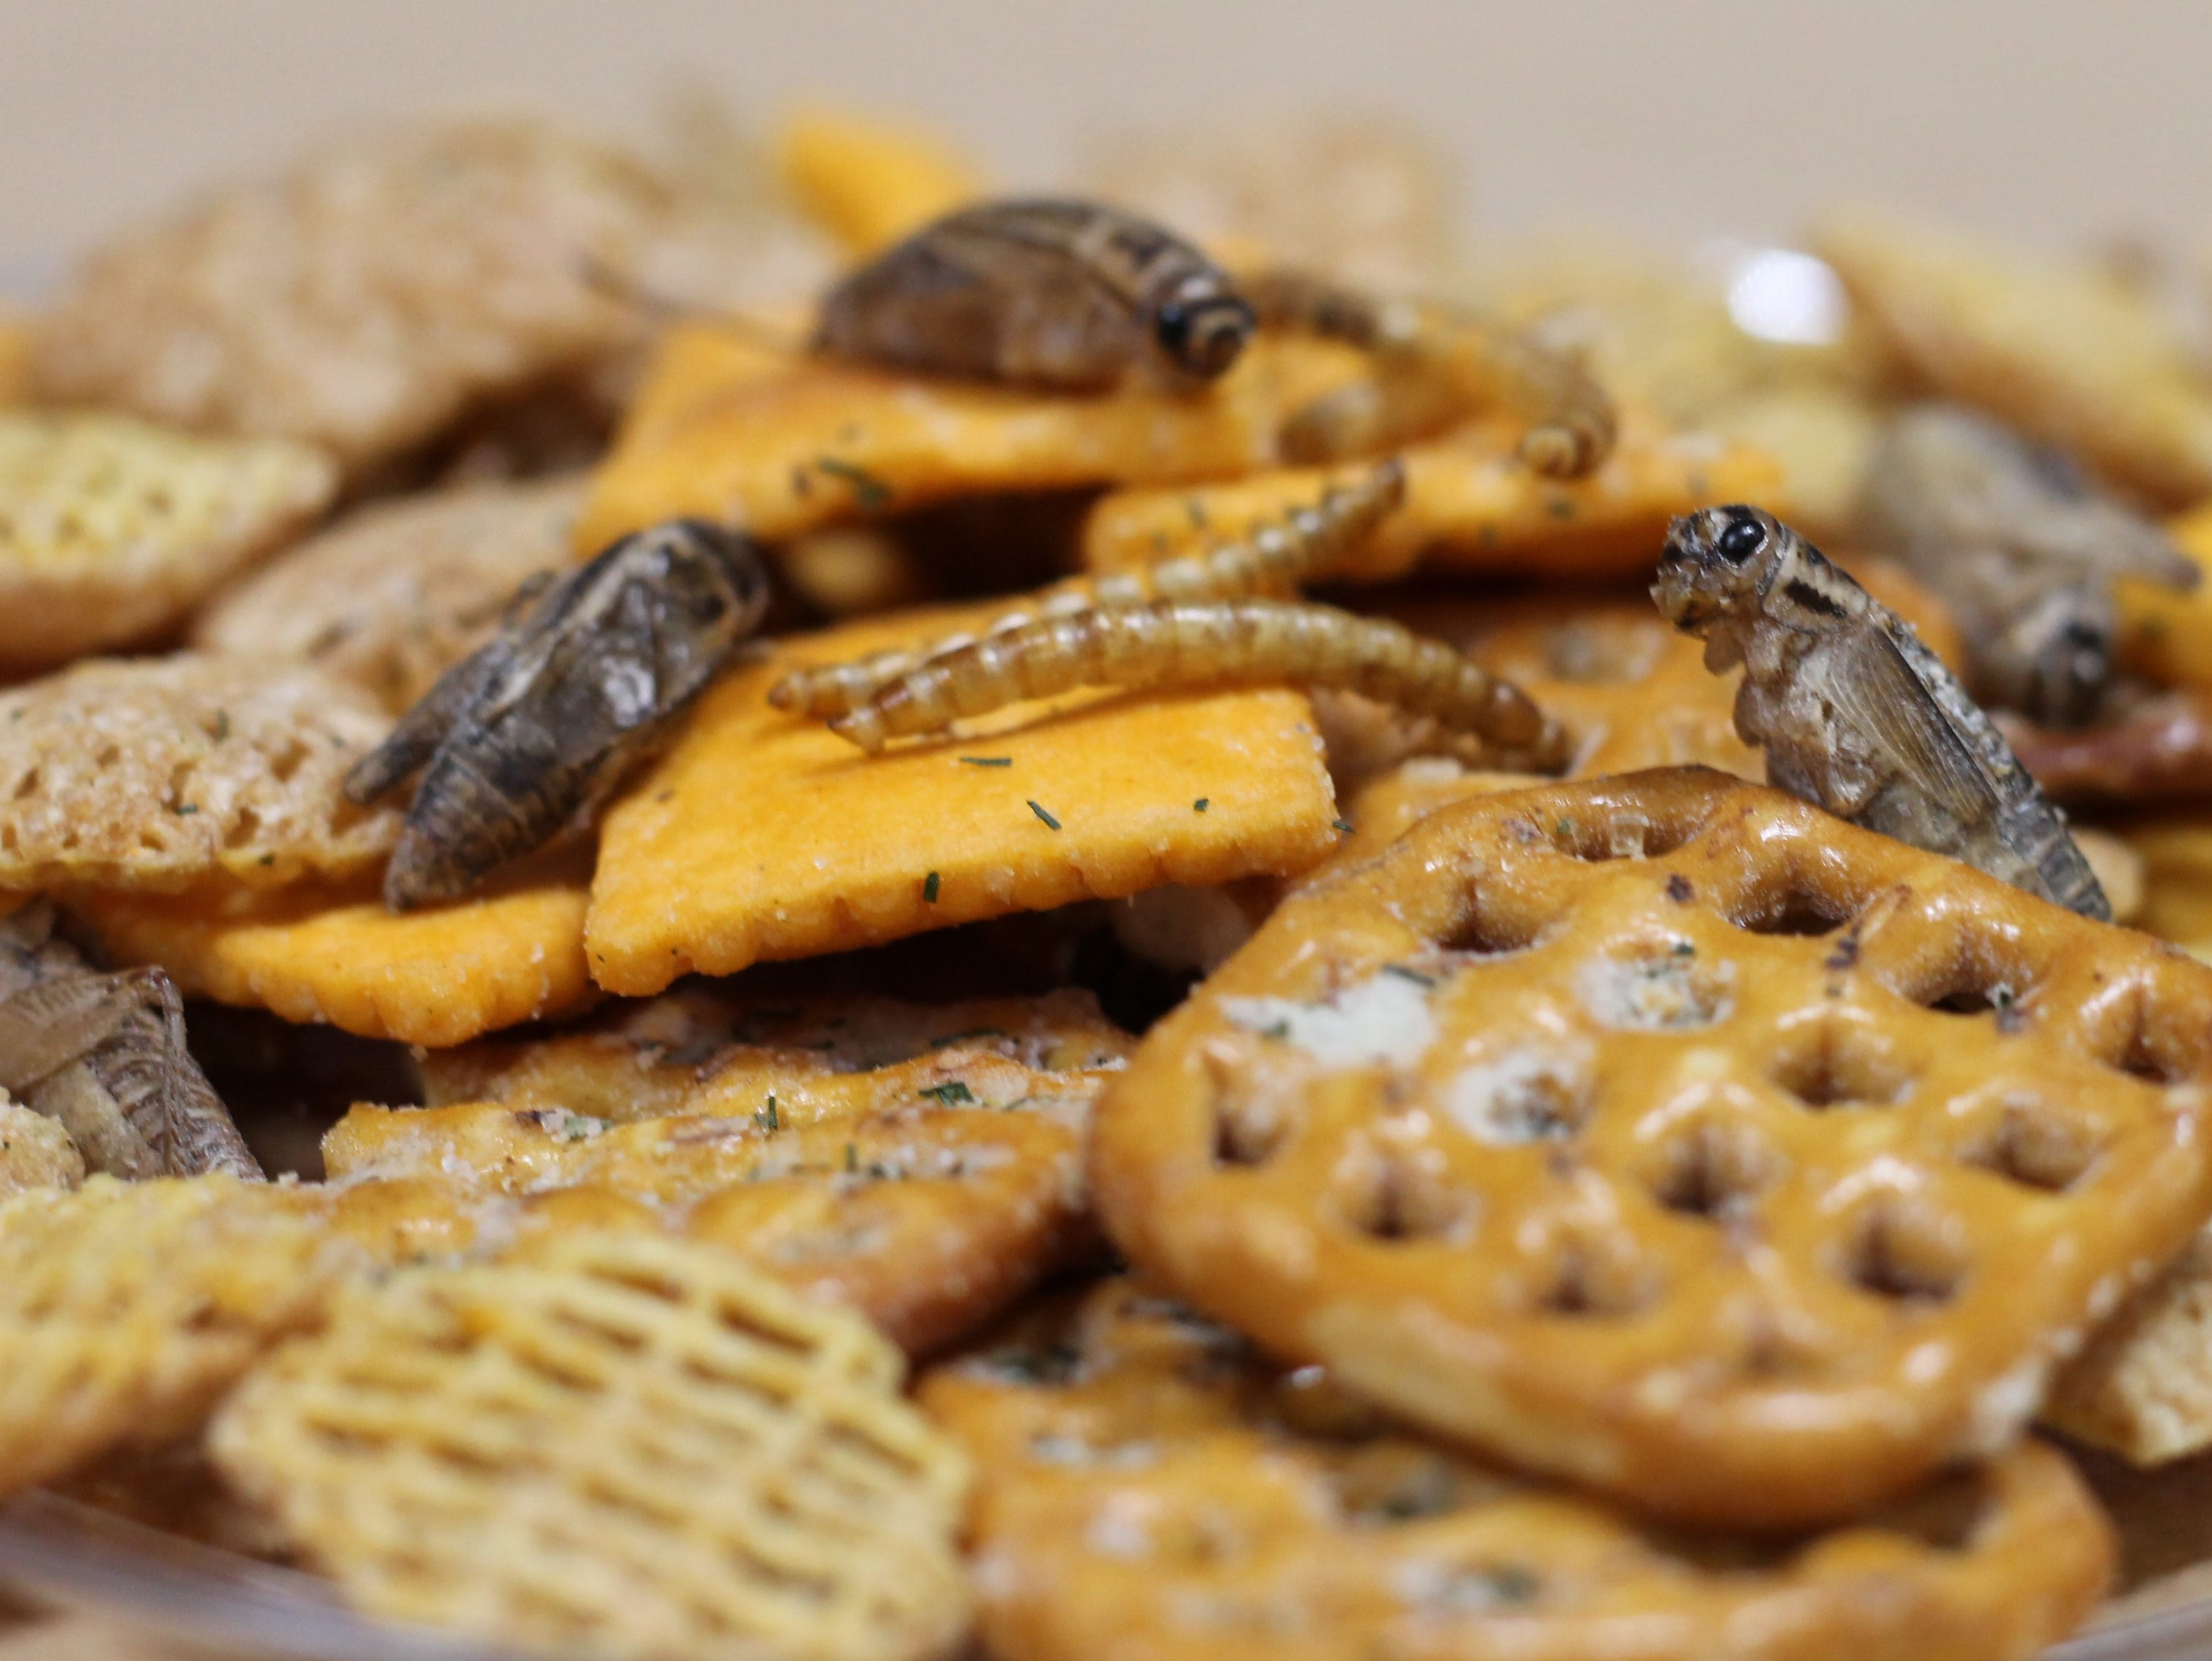 Add a few sour cream and onion flavored crickets and cheddar cheese larva to your favorite snack mix.